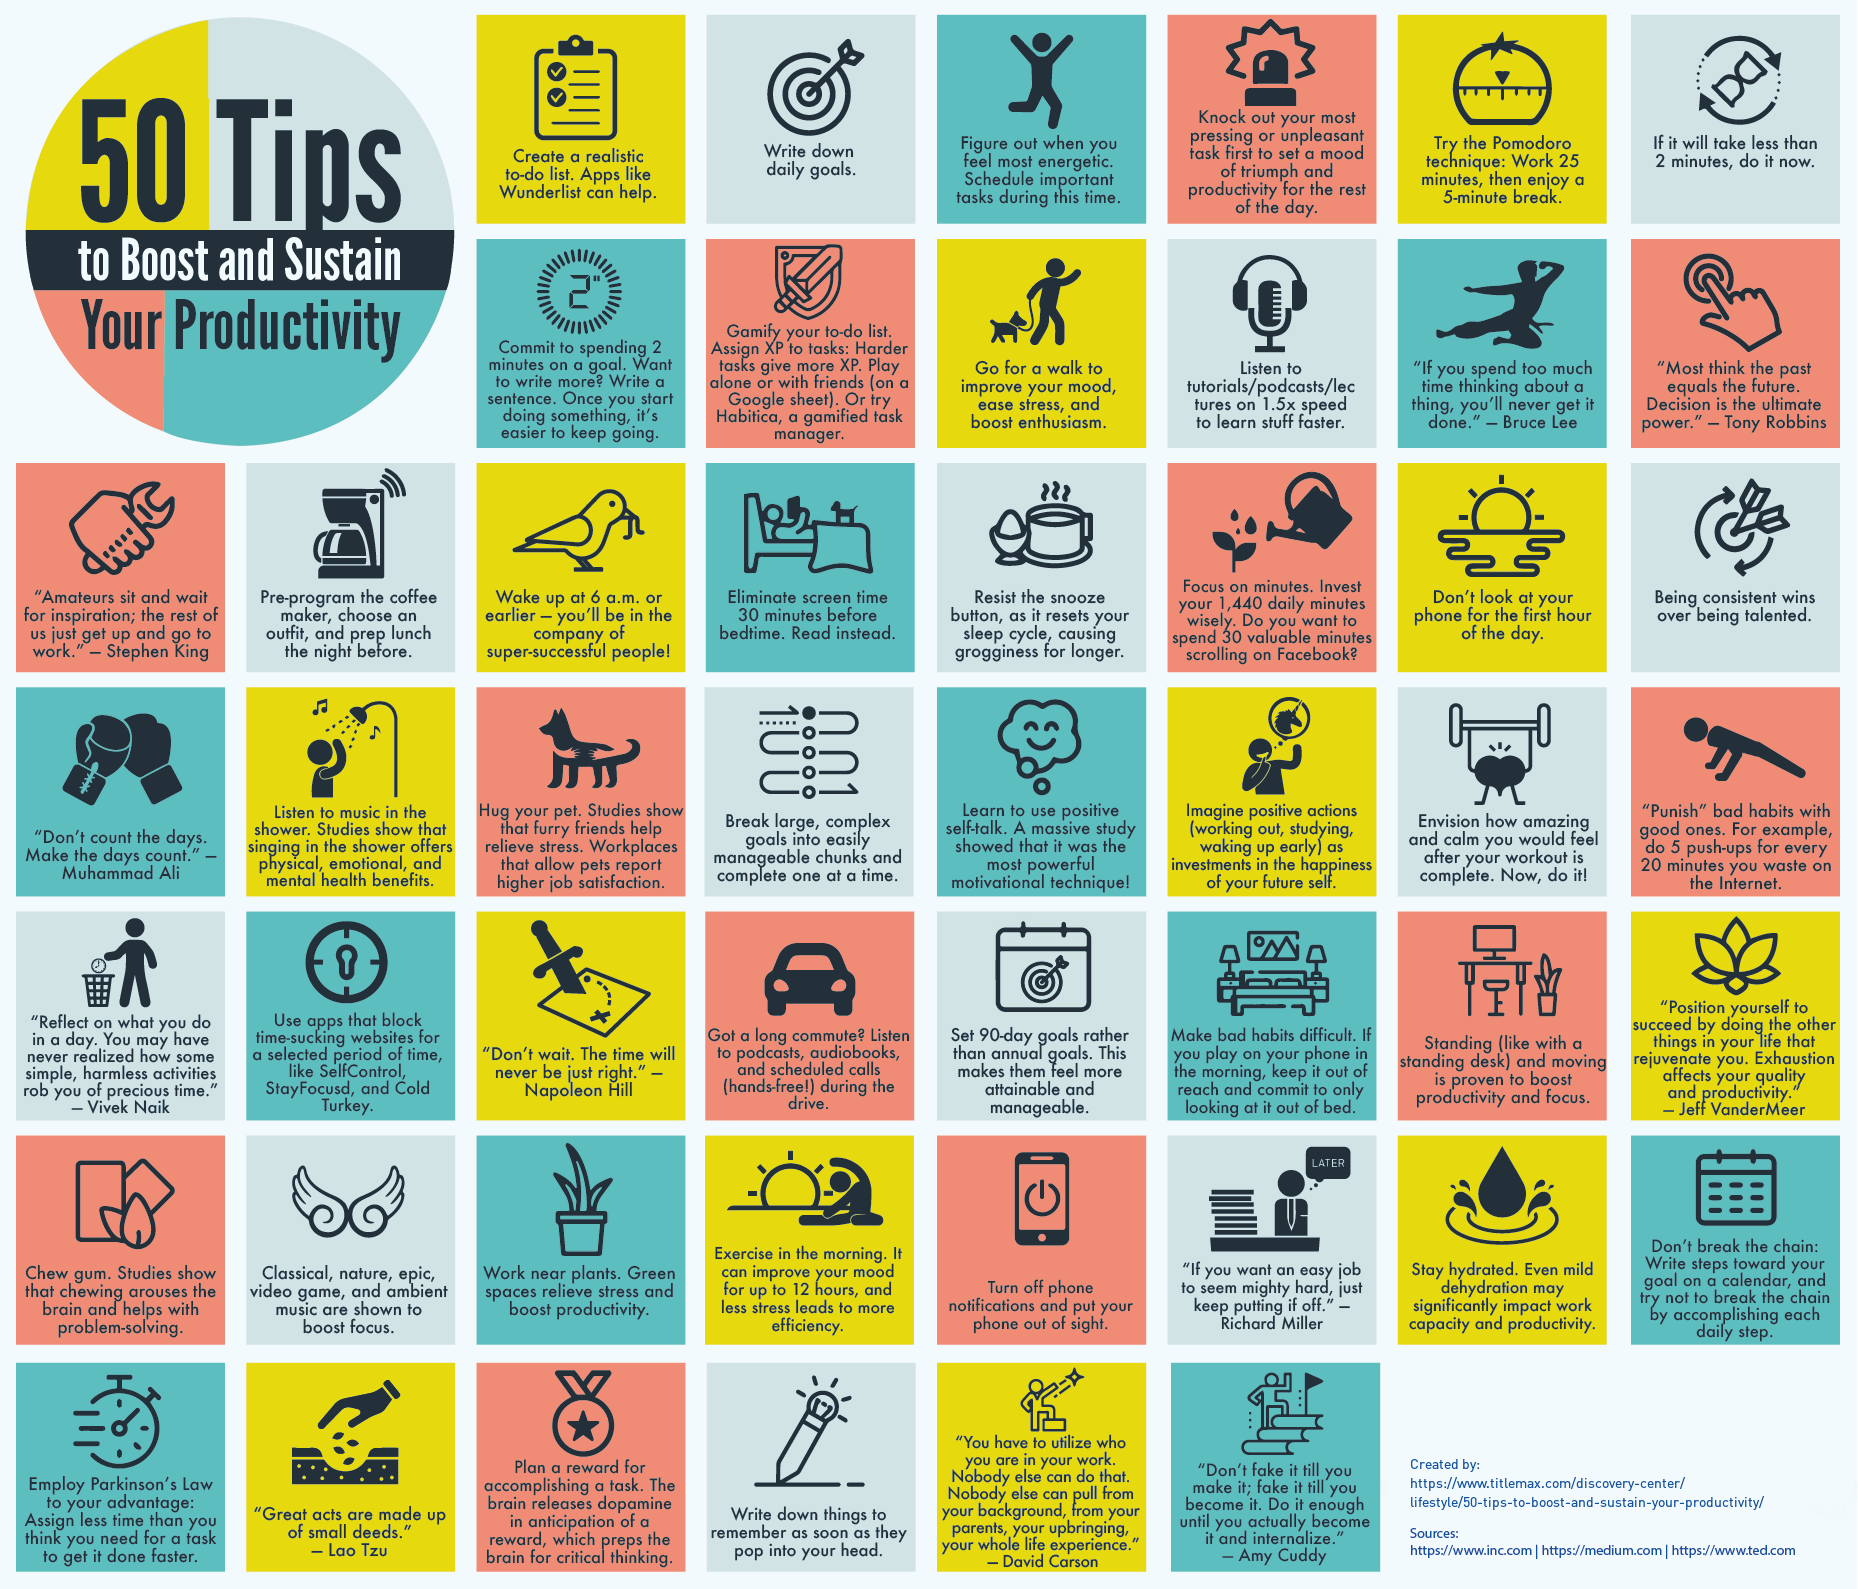 [Image] A poster of 50 tips to boost and sustain productivity.